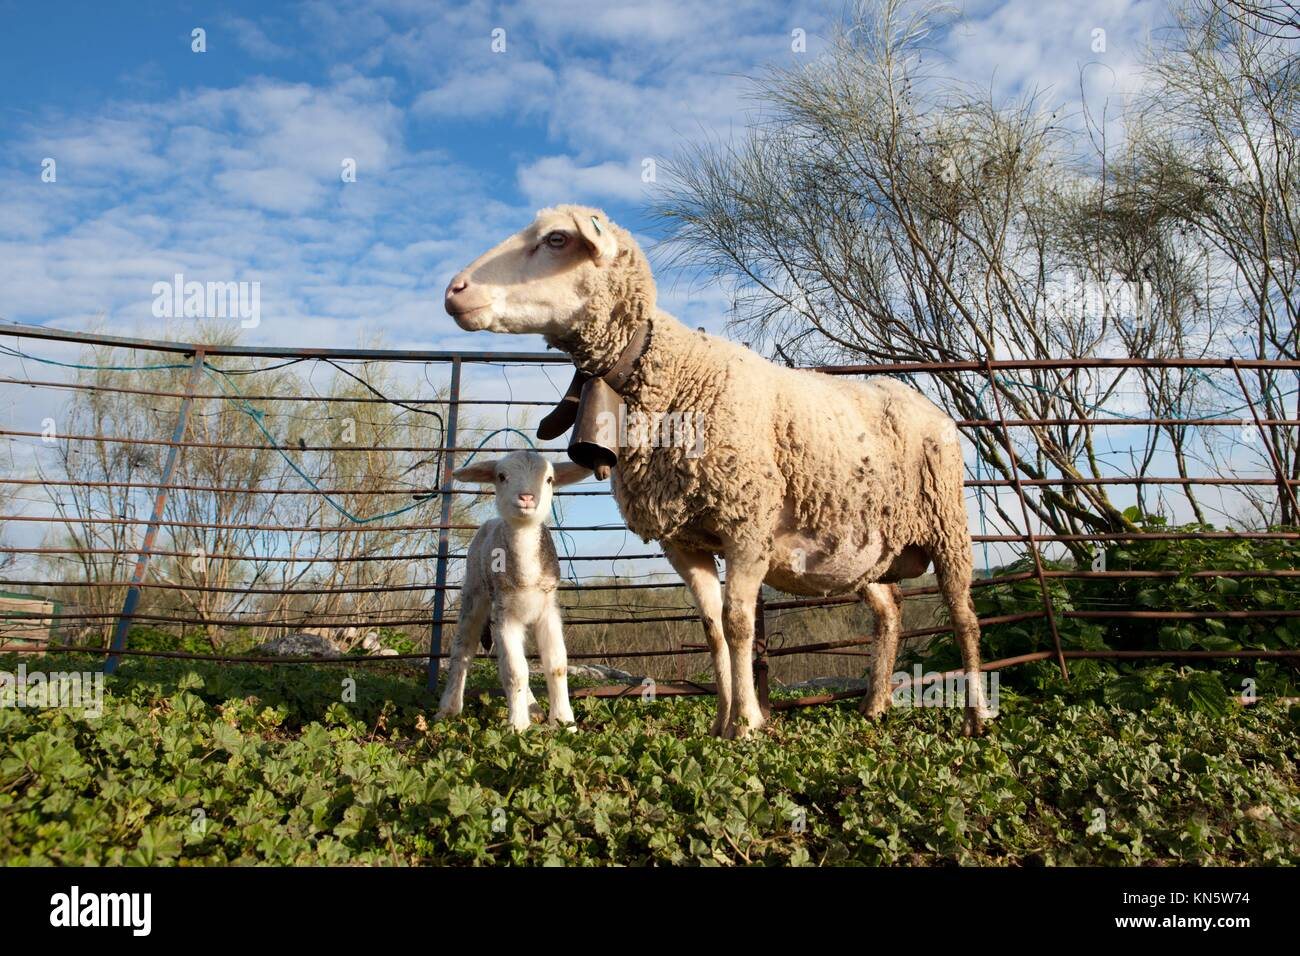 Baby lamb and her maternal sheep mother, Extremadura, Spain. - Stock Image